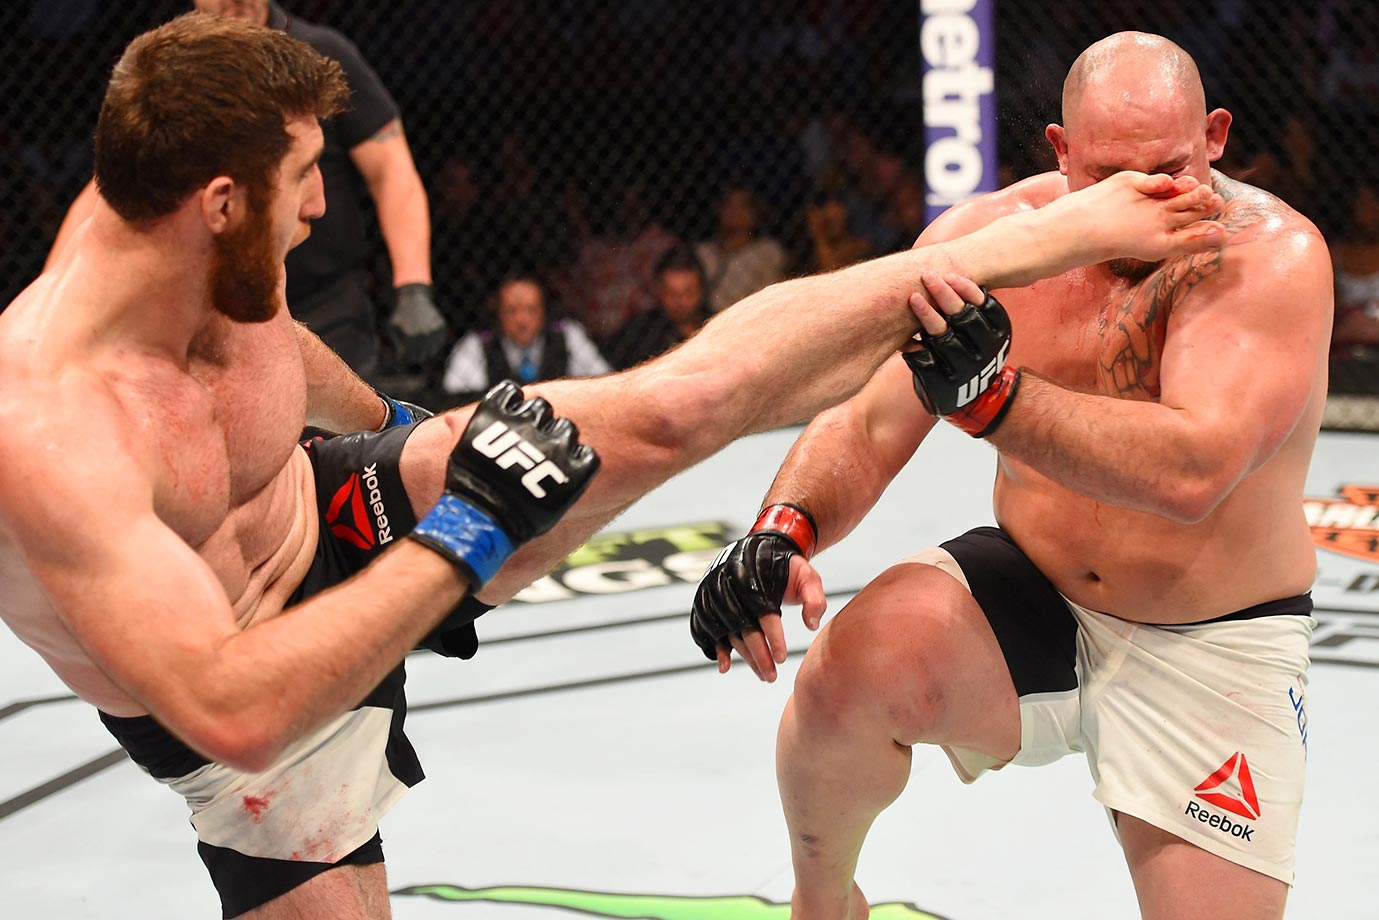 Ruslan Magomedov kicks Shawn Jordan in their heavyweight bout during the UFC 192 event.